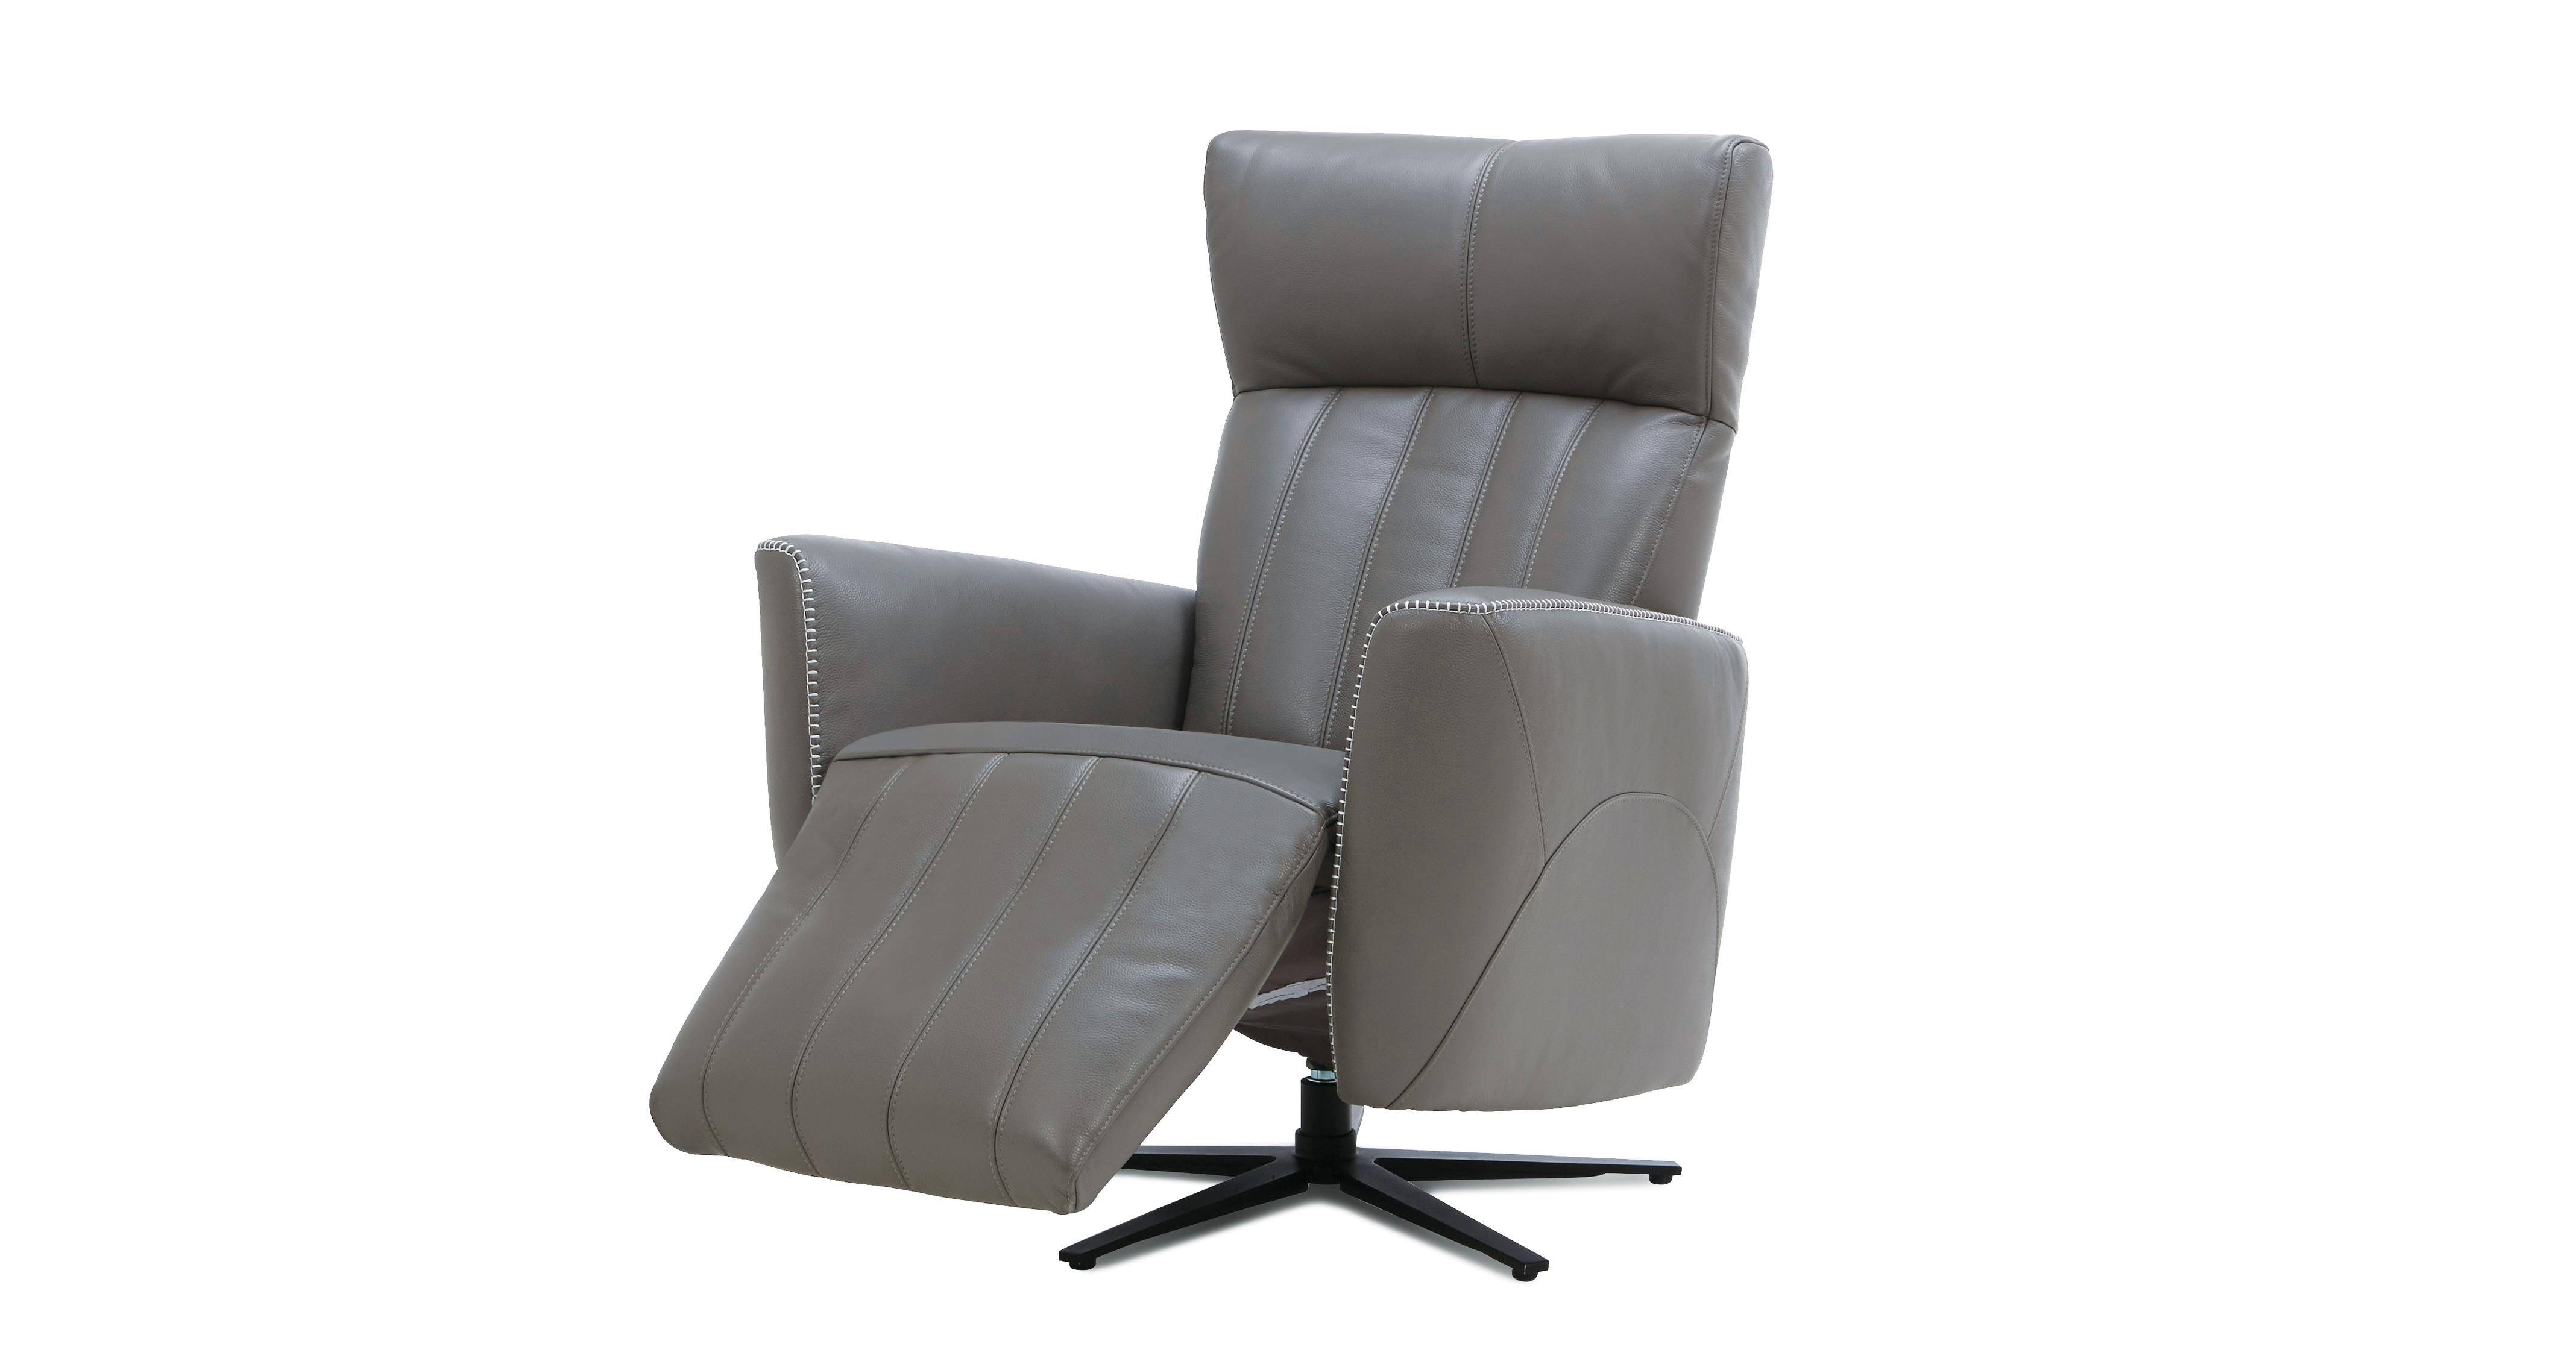 power recliner chairs uk red leather club chair in a range of styles for your home dfs winter sale nelly electric tv new